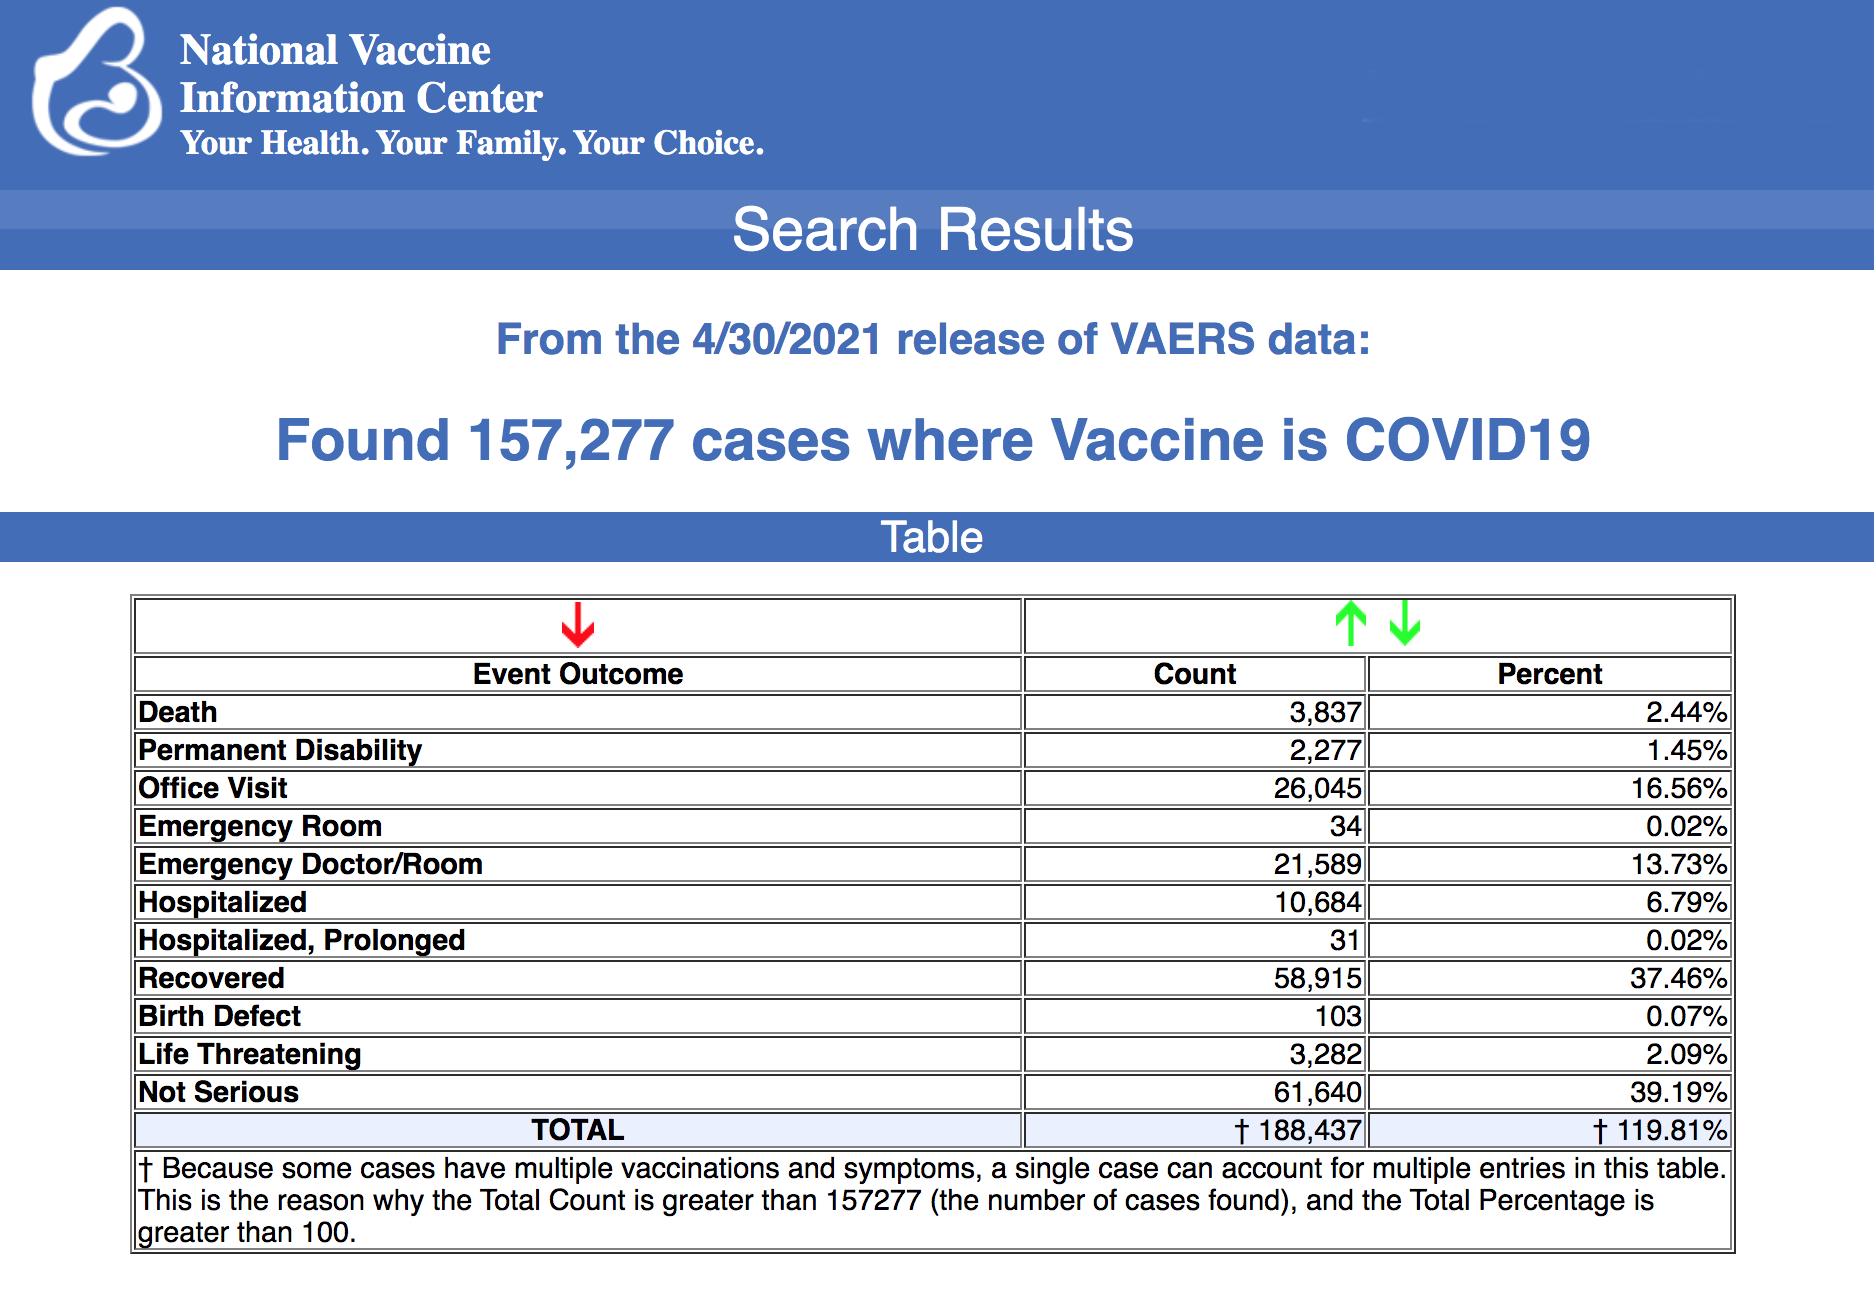 From the4/30/2021 release of VAERS data